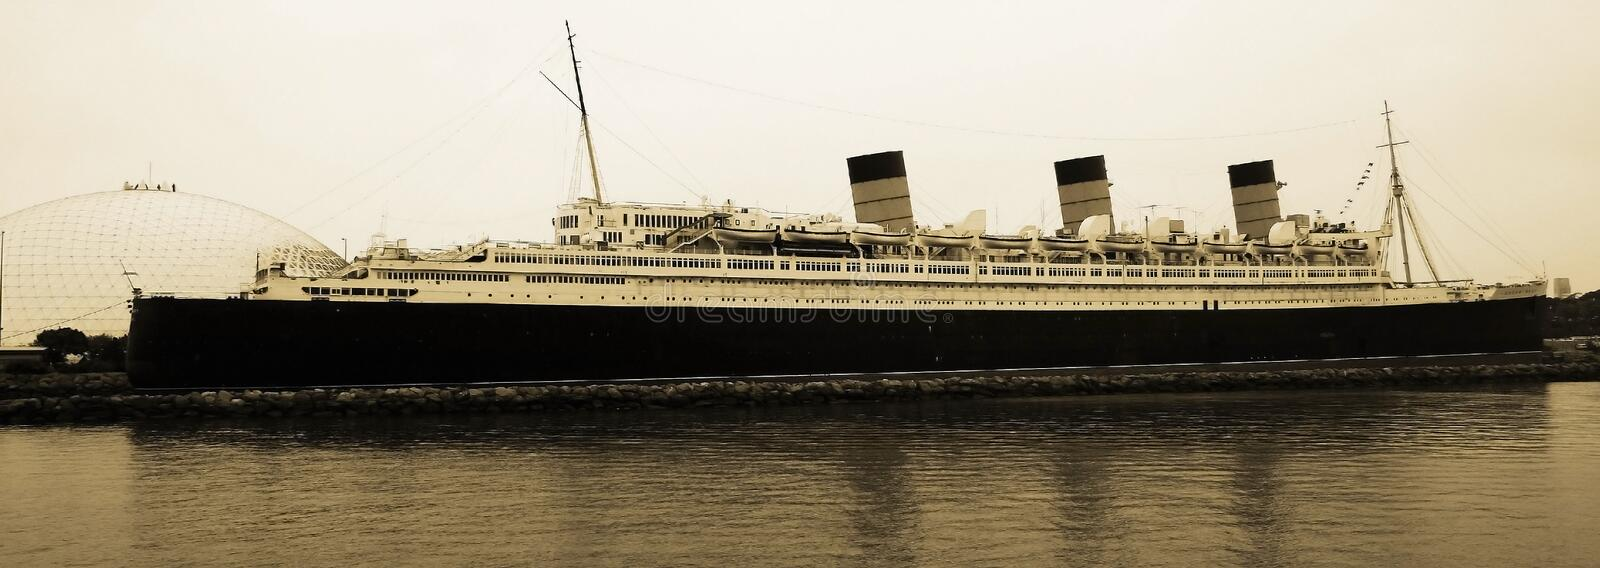 Cru Queen Mary image stock